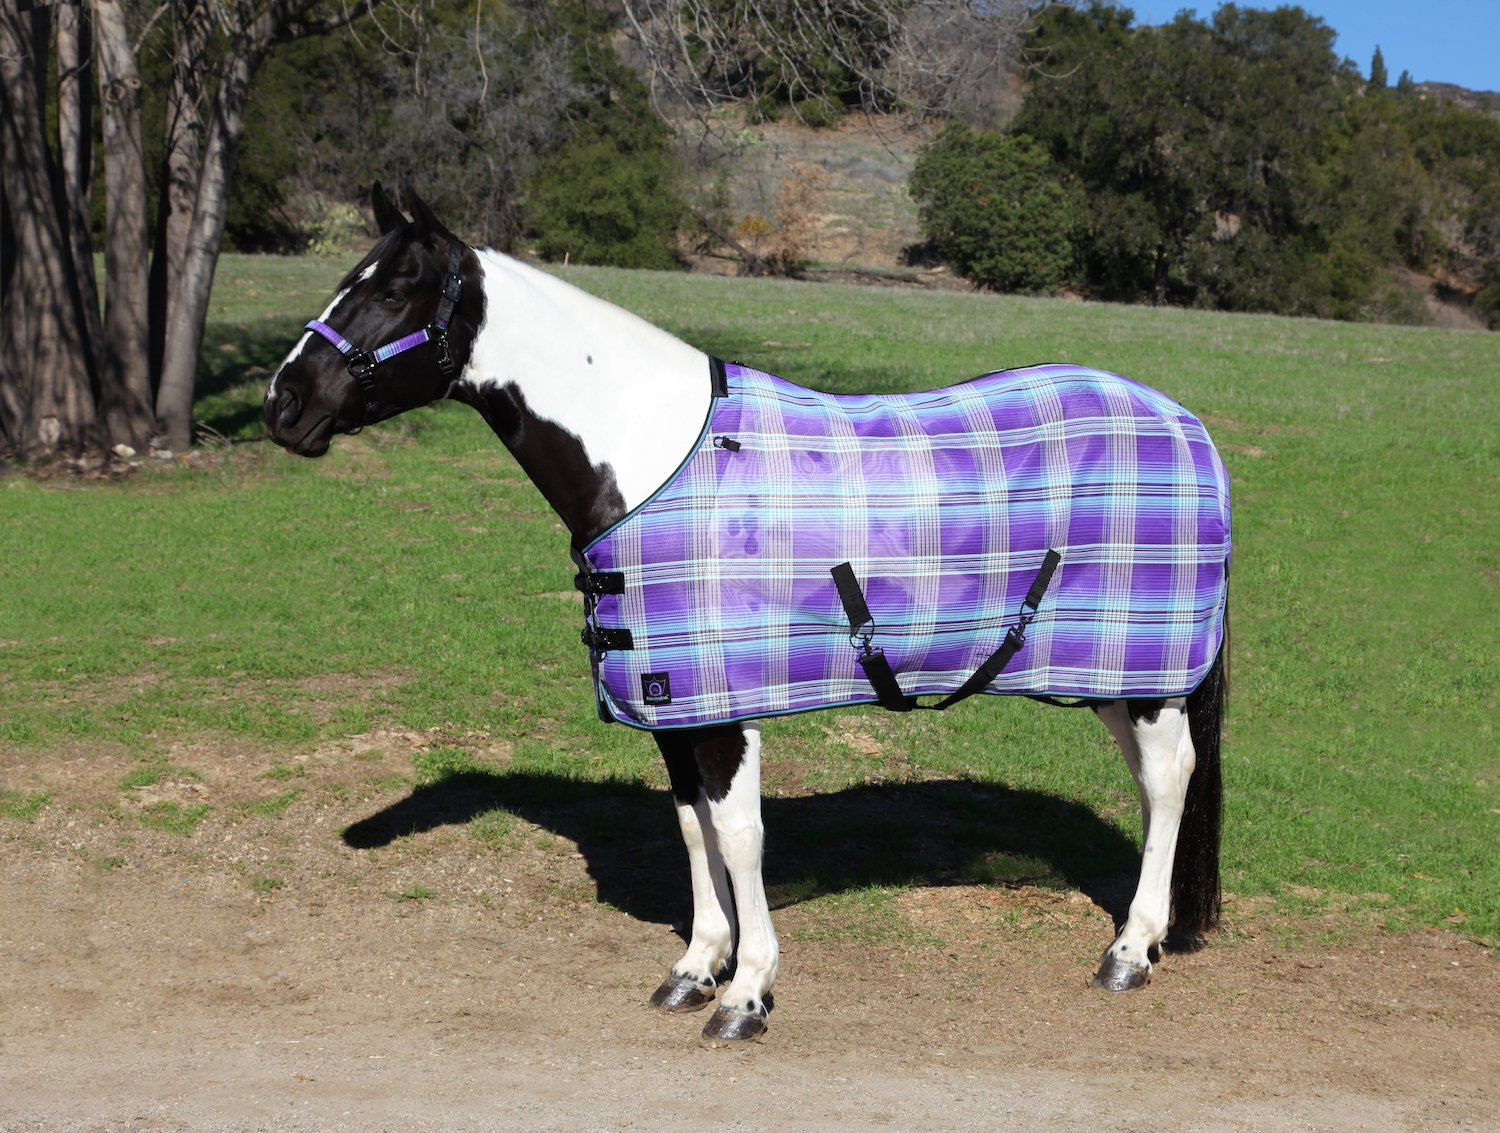 Kensington Signature Draft Protective Fly Sheet — SureFit Cut with Snap Front Chest Closure — Made of Grooming Mesh This Sheet Offers Maximum Protection Year Round, Size 96, Lavender Mint Plaid